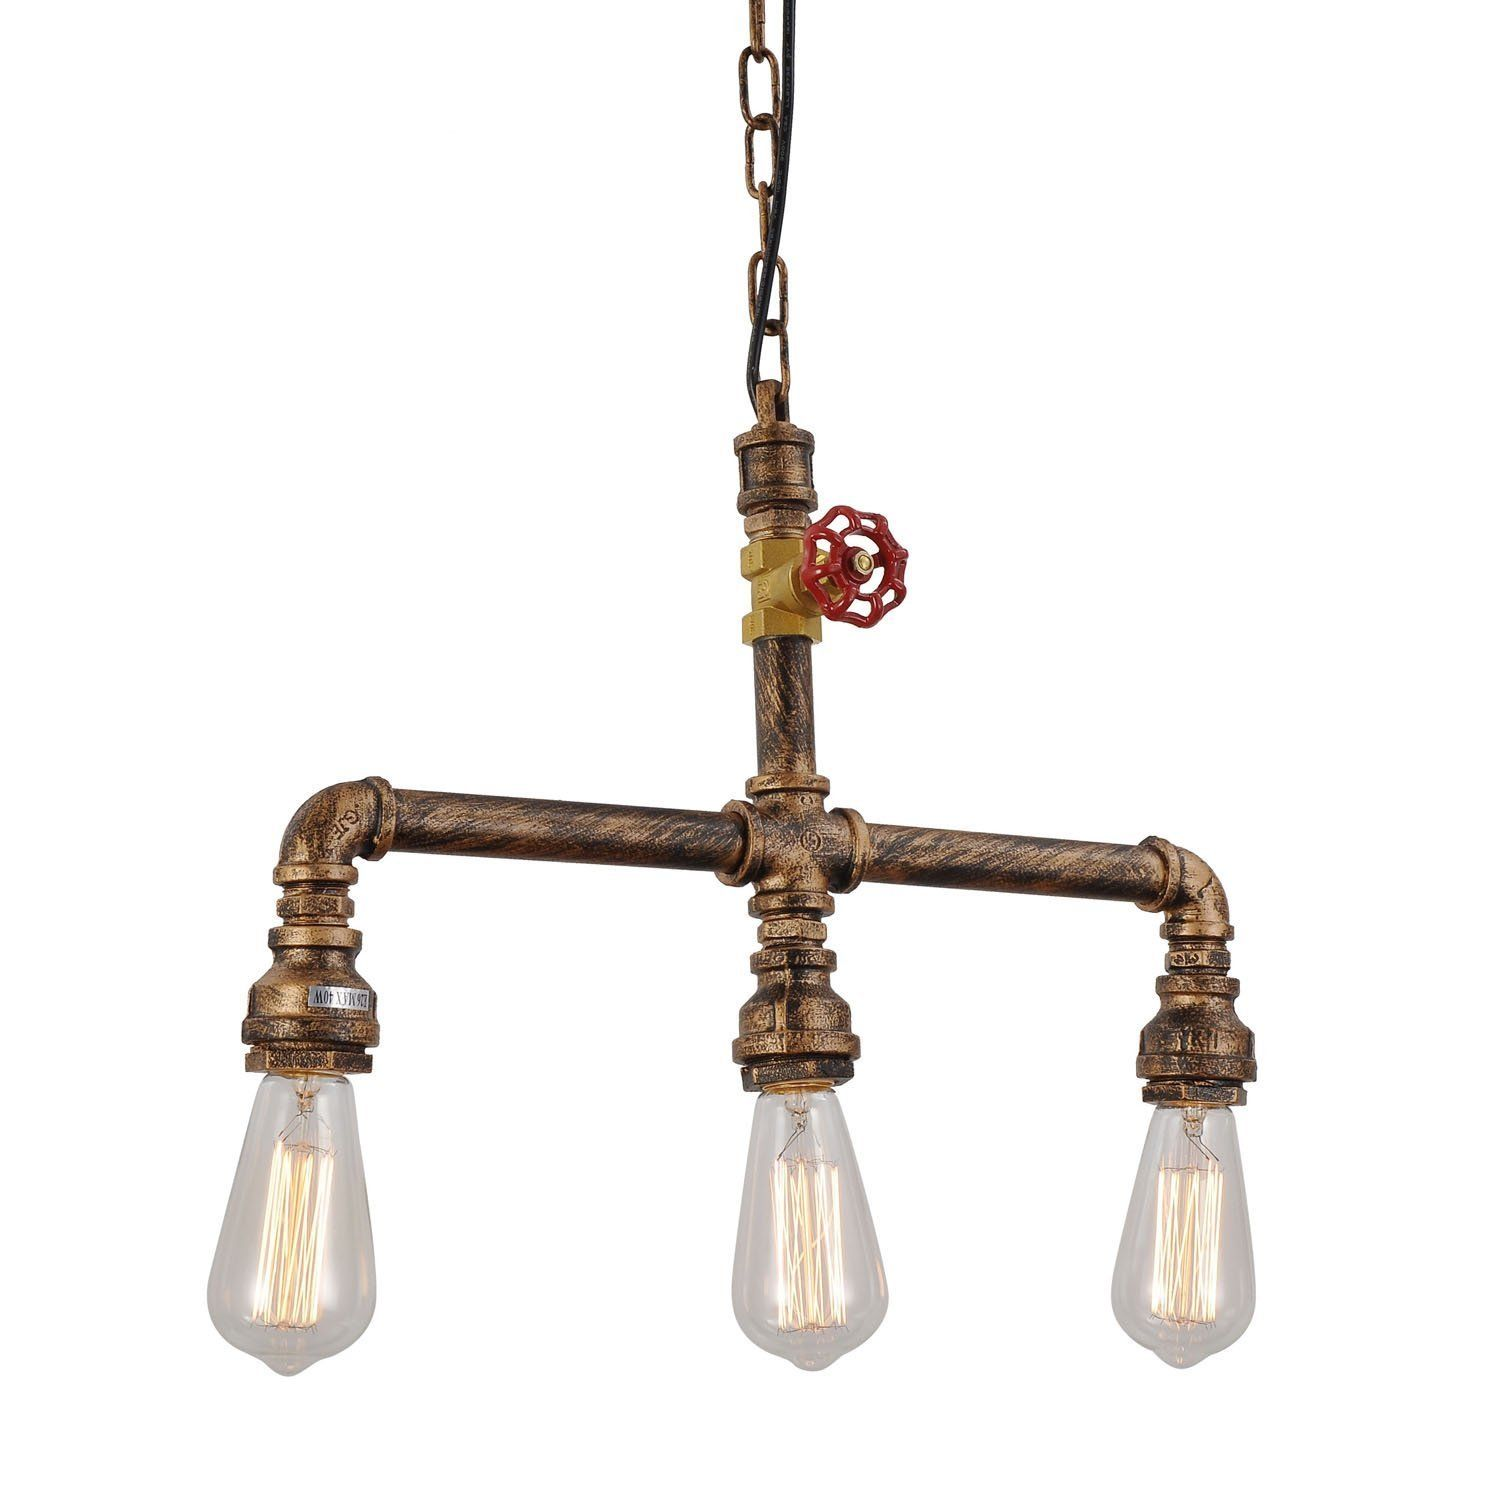 3-Lights Painted Finish Rustic Copper Metal Water Pipe Pendant Light 120W